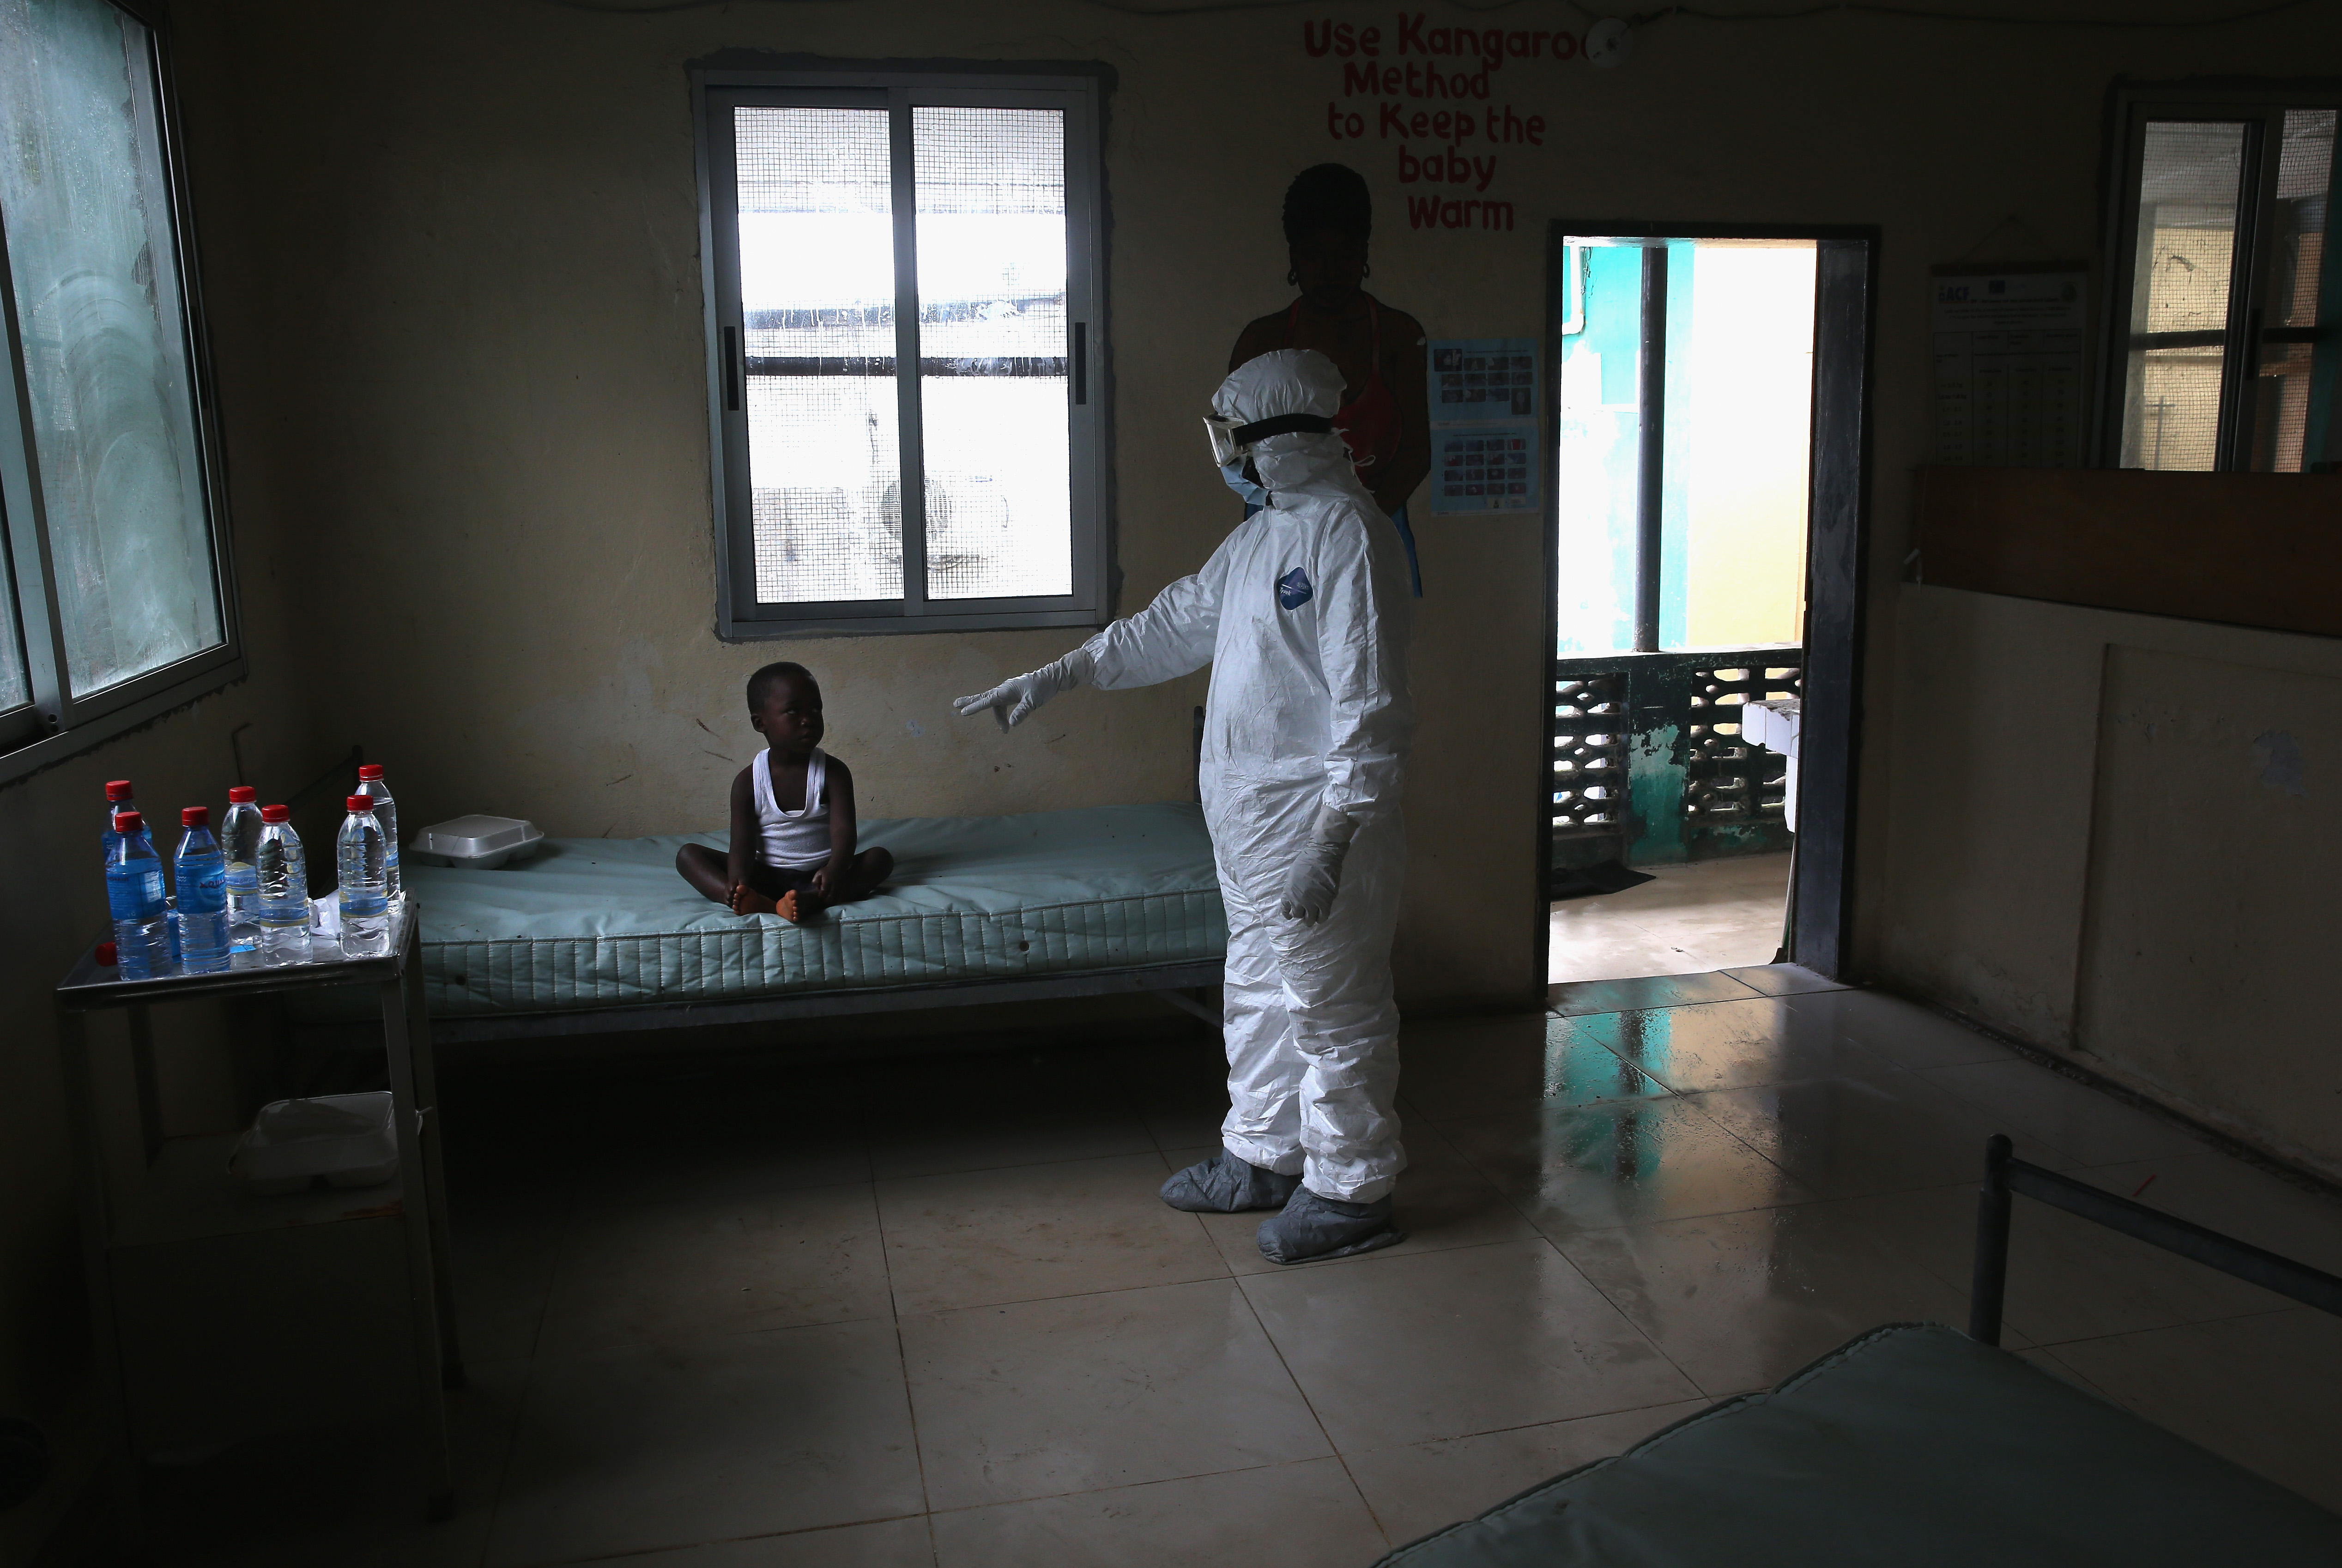 A Liberian Ministry of Health worker, dressed in an anti-contamination suit, speaks to a child in a holding center for suspected Ebola patients at Redemption Hospital on Oct. 3, 2014 in Monrovia, Liberia.